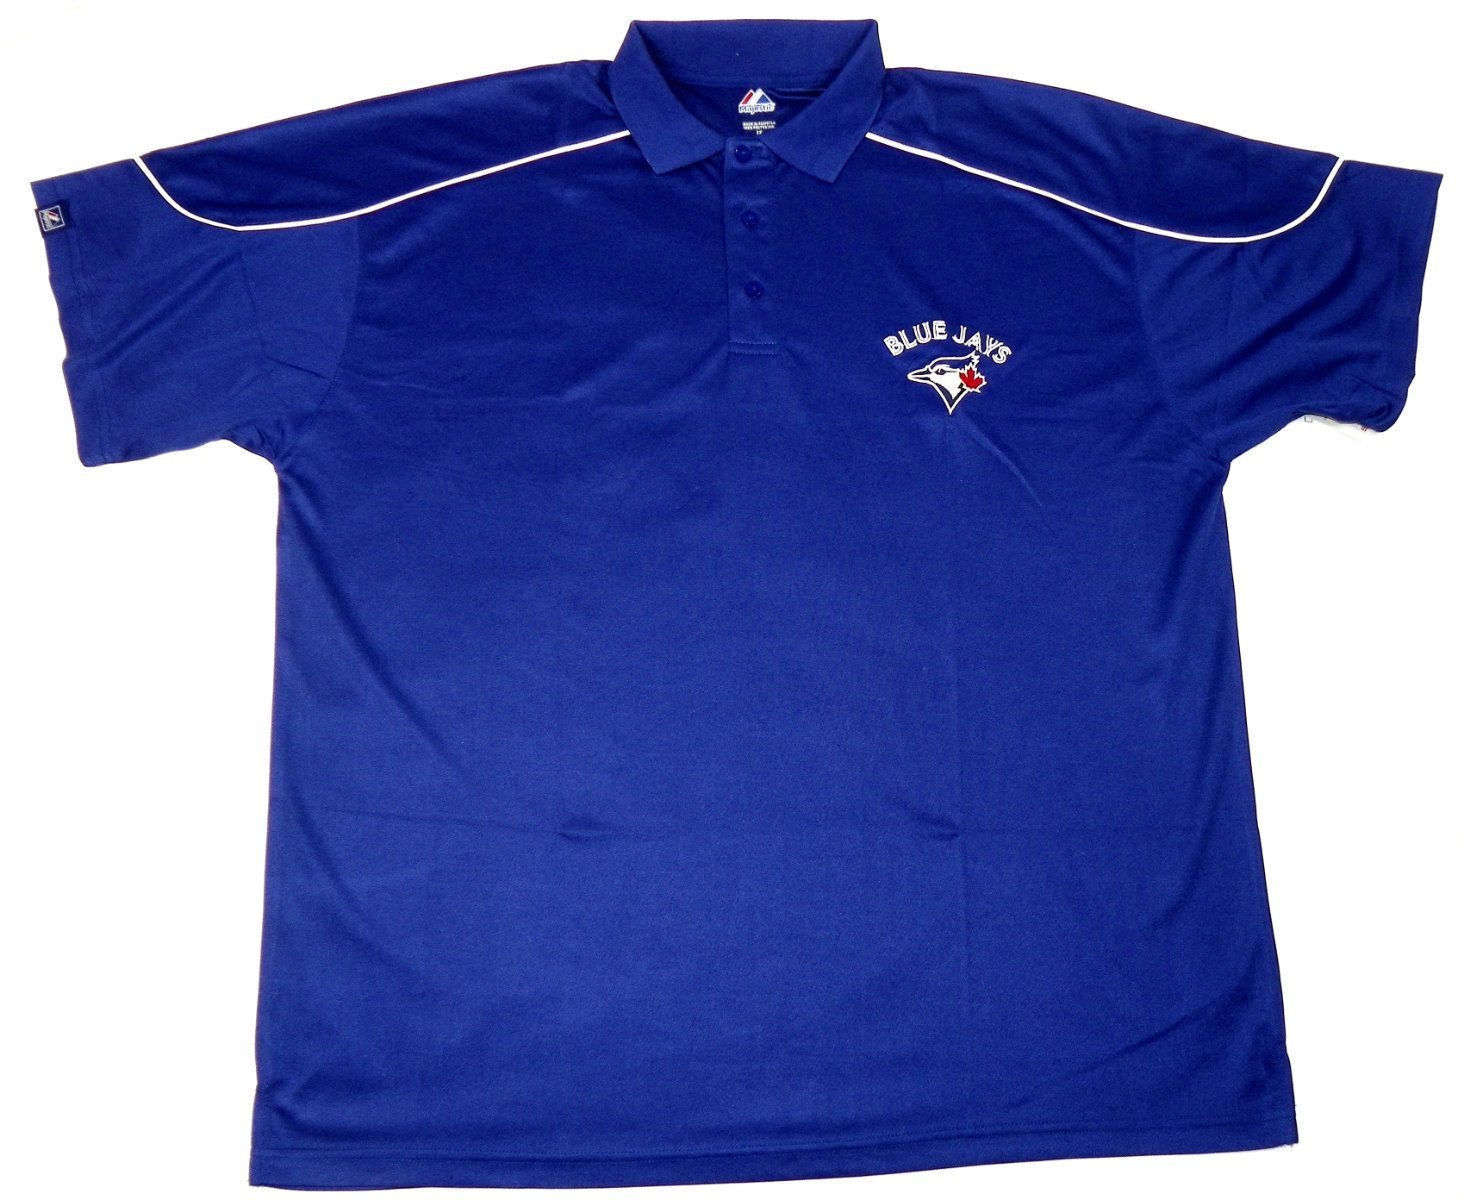 5XL Toronto Blue Jays Polo Men's MLB Rundown Baseball Shirt Big Majestic